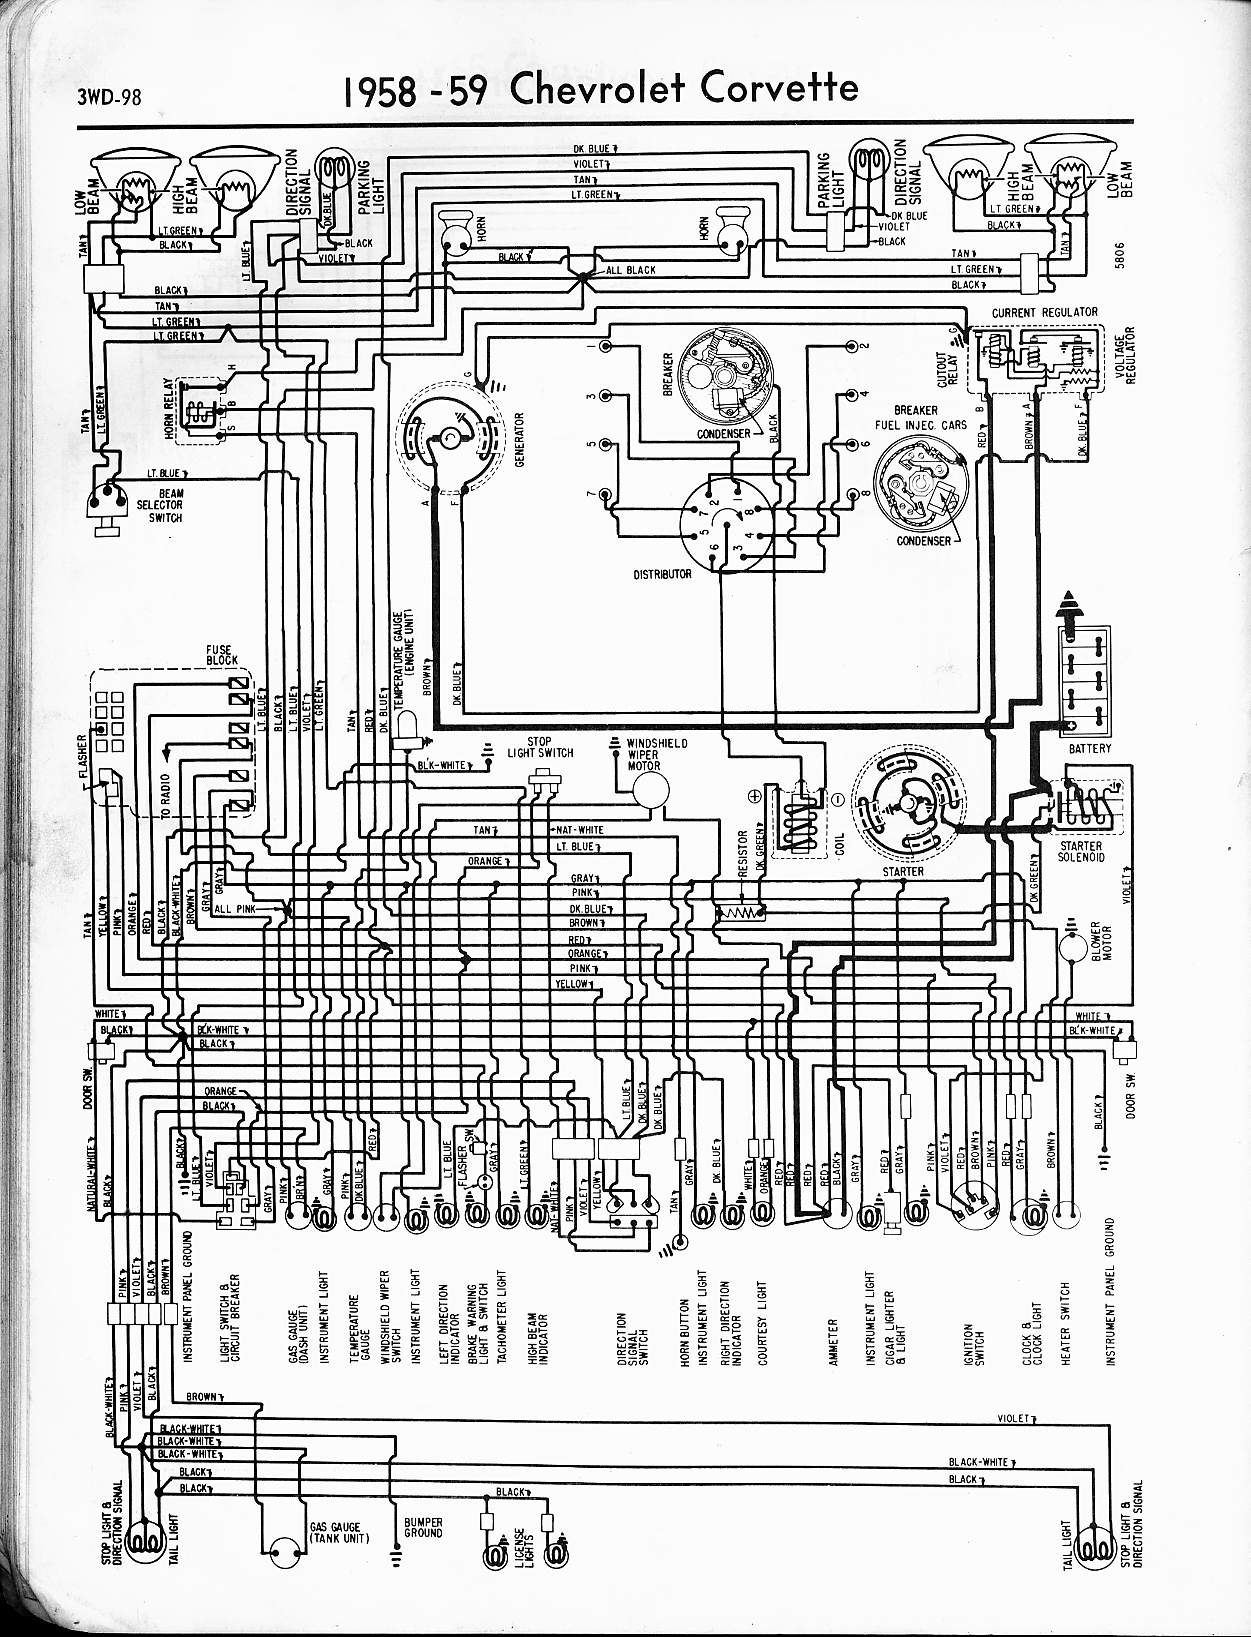 57 65 Chevy Wiring Diagrams 1969 Chevelle Wiring Diagram 1965 Chevelle  Wiring Diagram